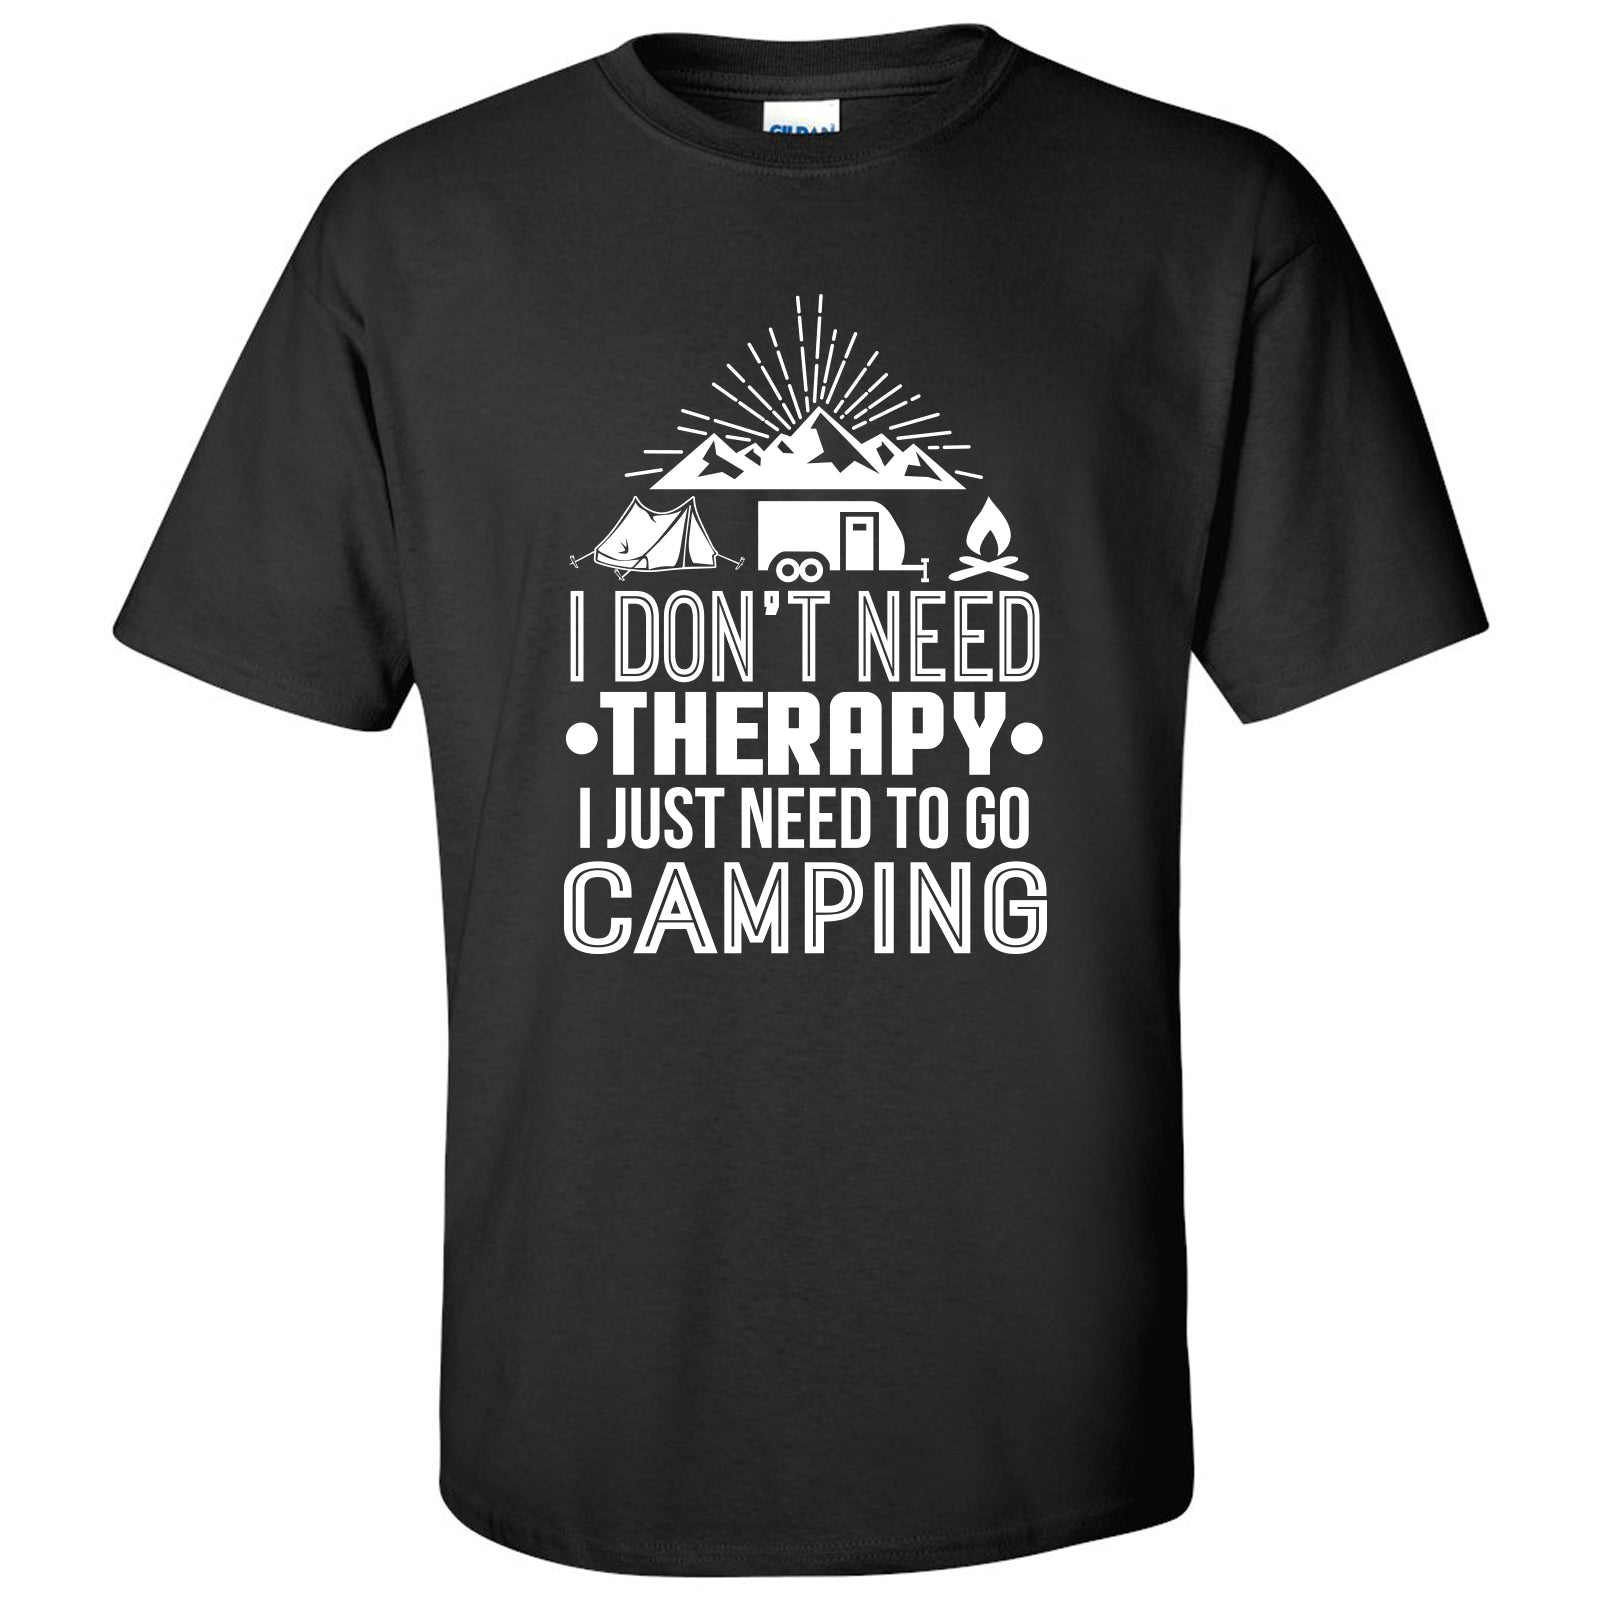 712314c7 Don't Need Therapy I Just Need To Go Camping - T-Shirt - Black